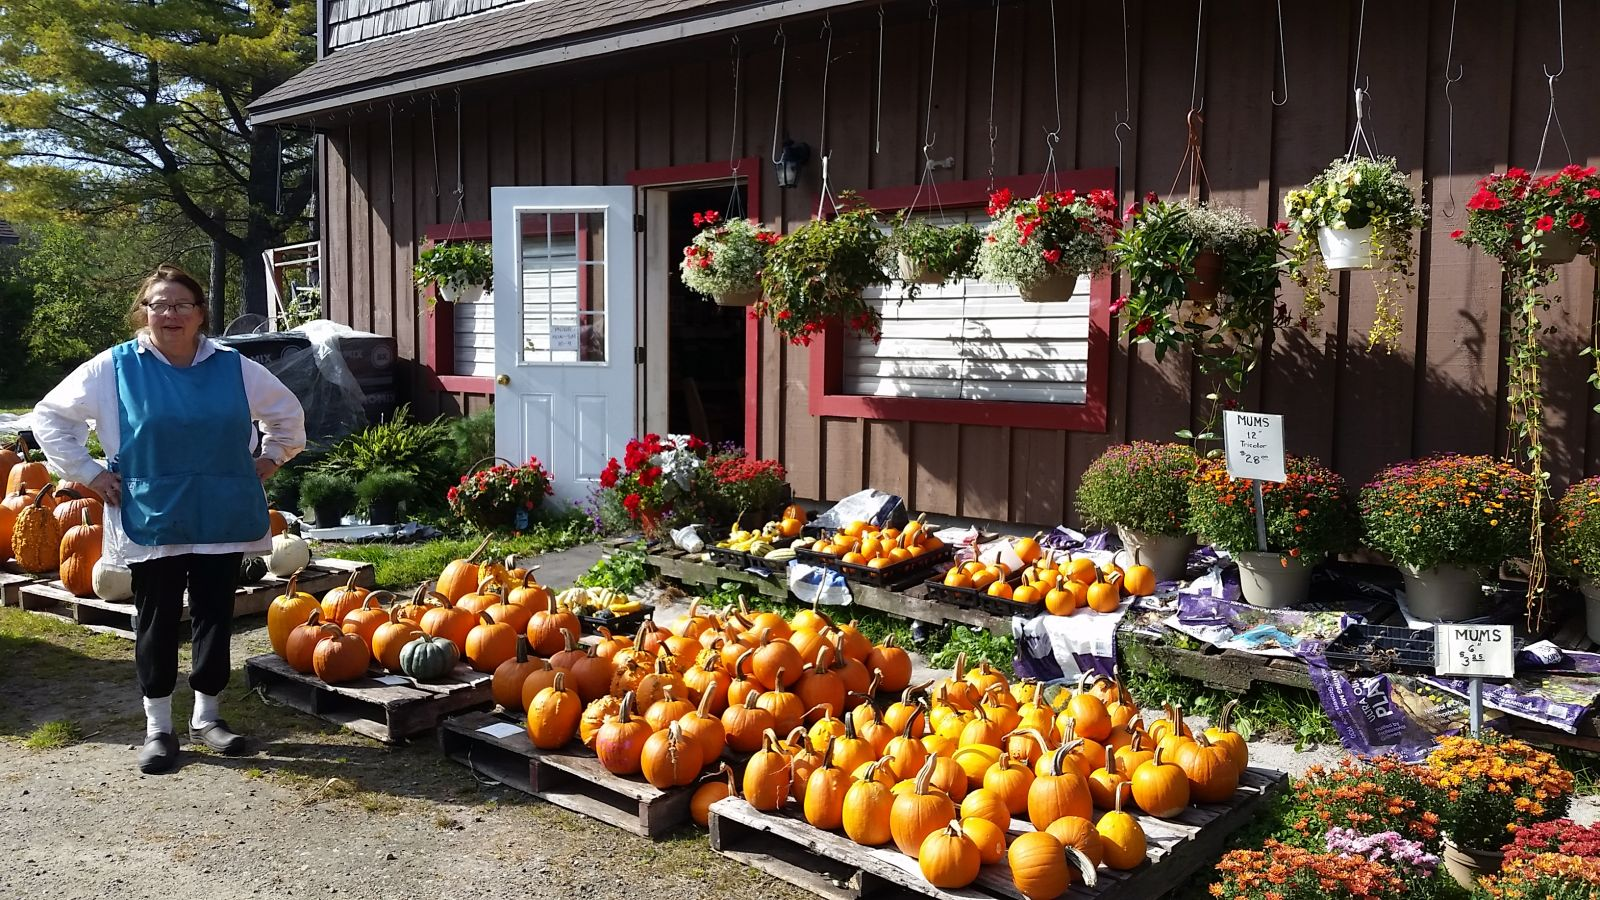 Usher's Farm - pumpkins and mums are ready!